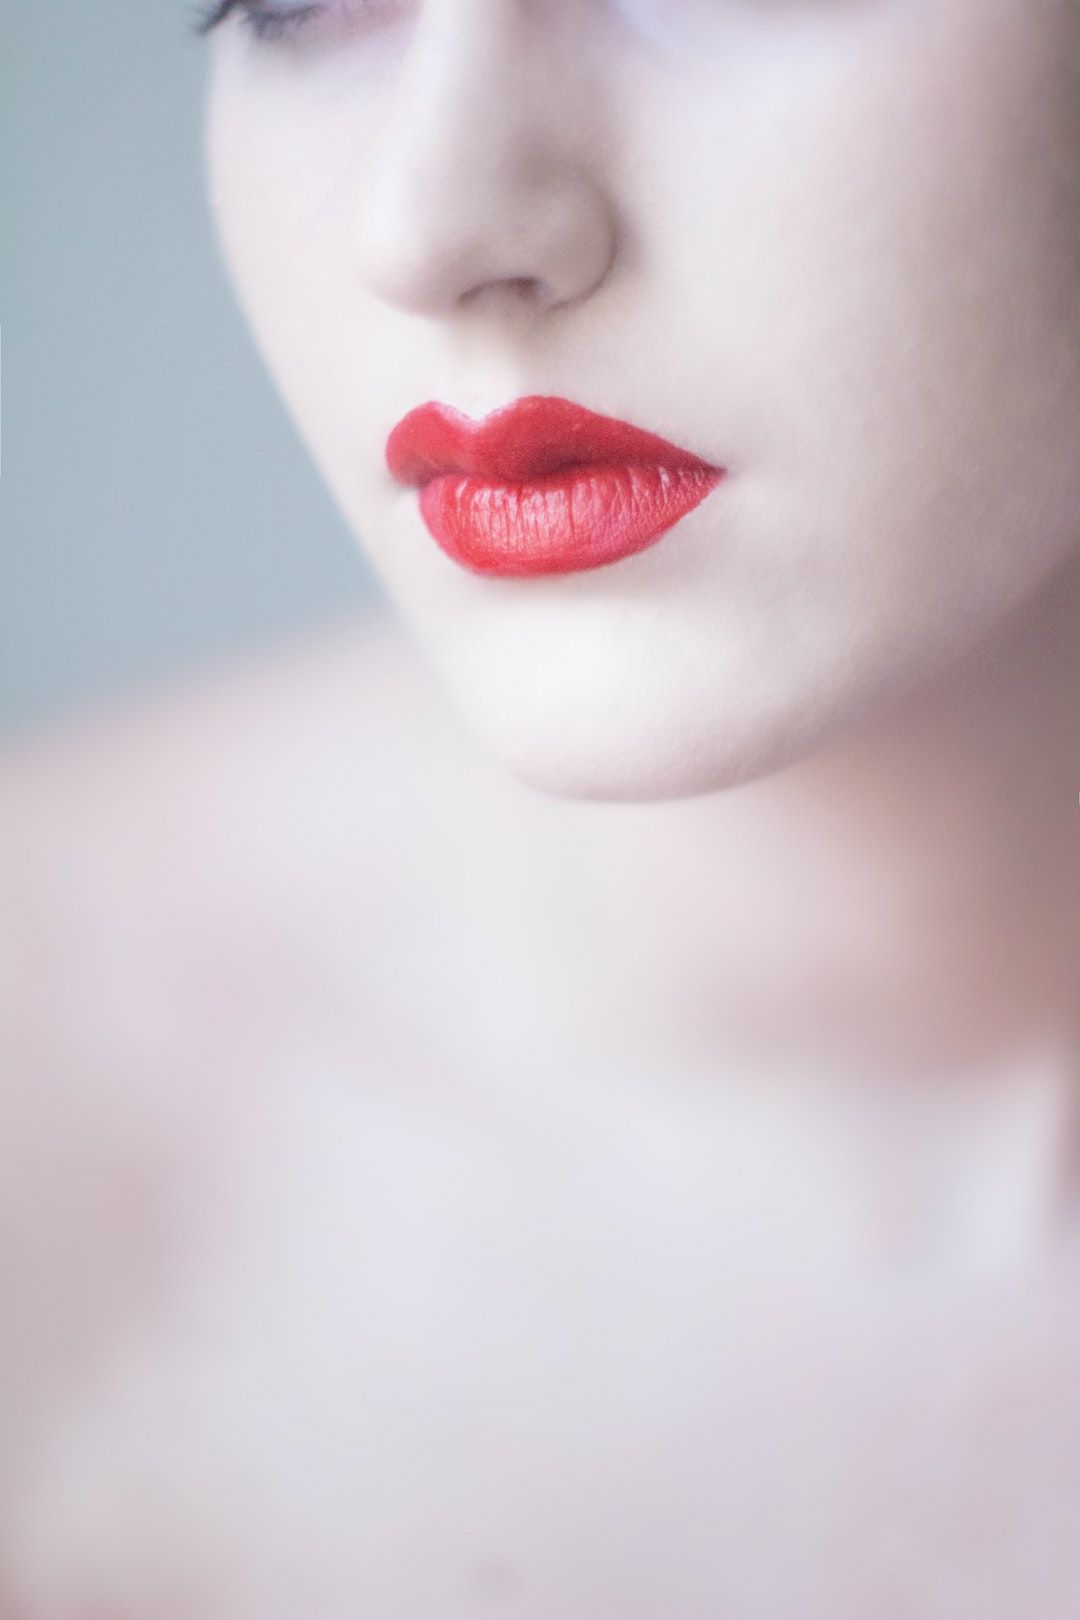 Download This Free Hd Photo Of Woman Lips Face And Soft By Ina